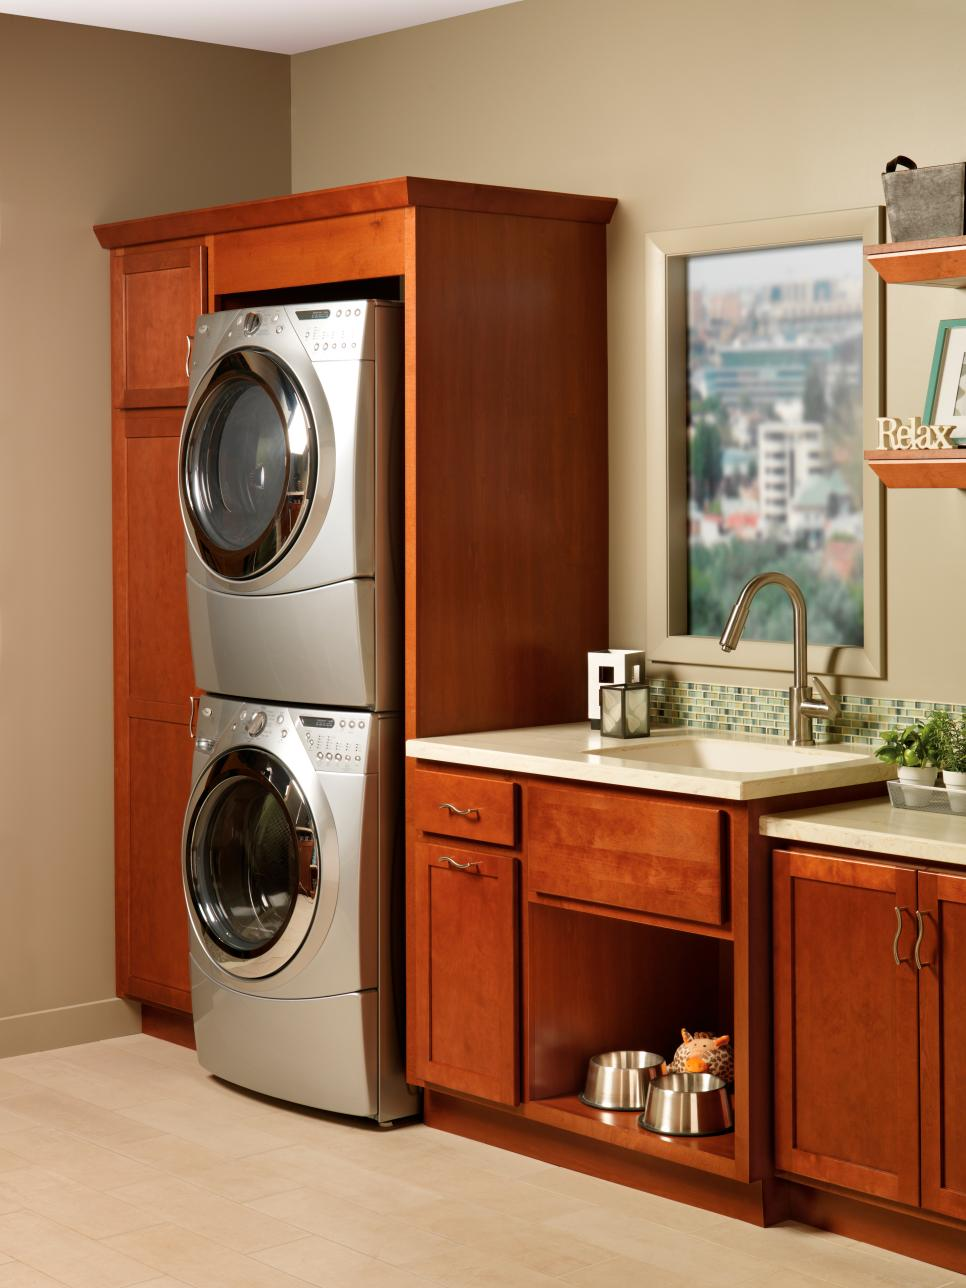 laundry room design ideas hgtv - Laundry Room Design Ideas